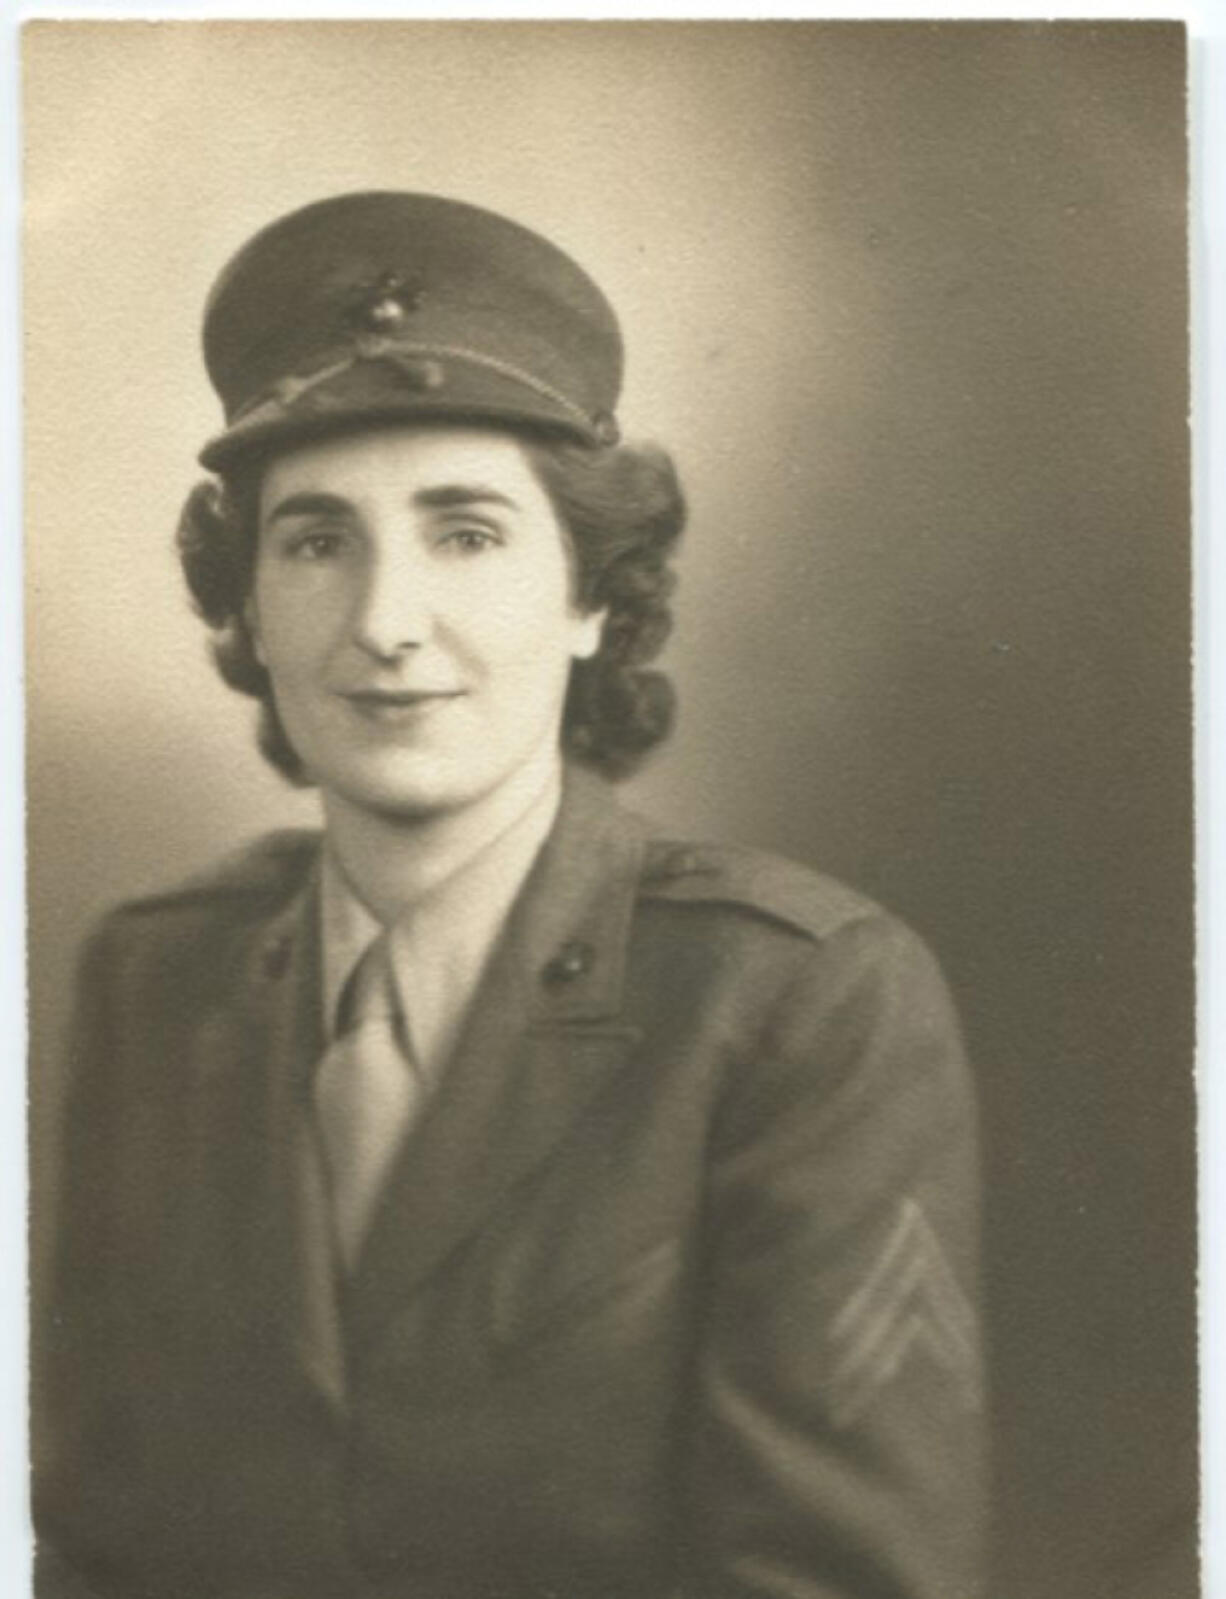 """Sgt. Betty Blair in her Marine uniform in about 1944. She wasn't the first woman in the Marine Corps. During World War I, Elizabeth """"Bessie"""" Welke was, bearing the diminutive moniker """"Marinette."""" Welke was sent to Portland to recruit men for the war. In the next war, Blair was the first woman Marine in Clark County and Washington - and likely the first in the Pacific Northwest."""